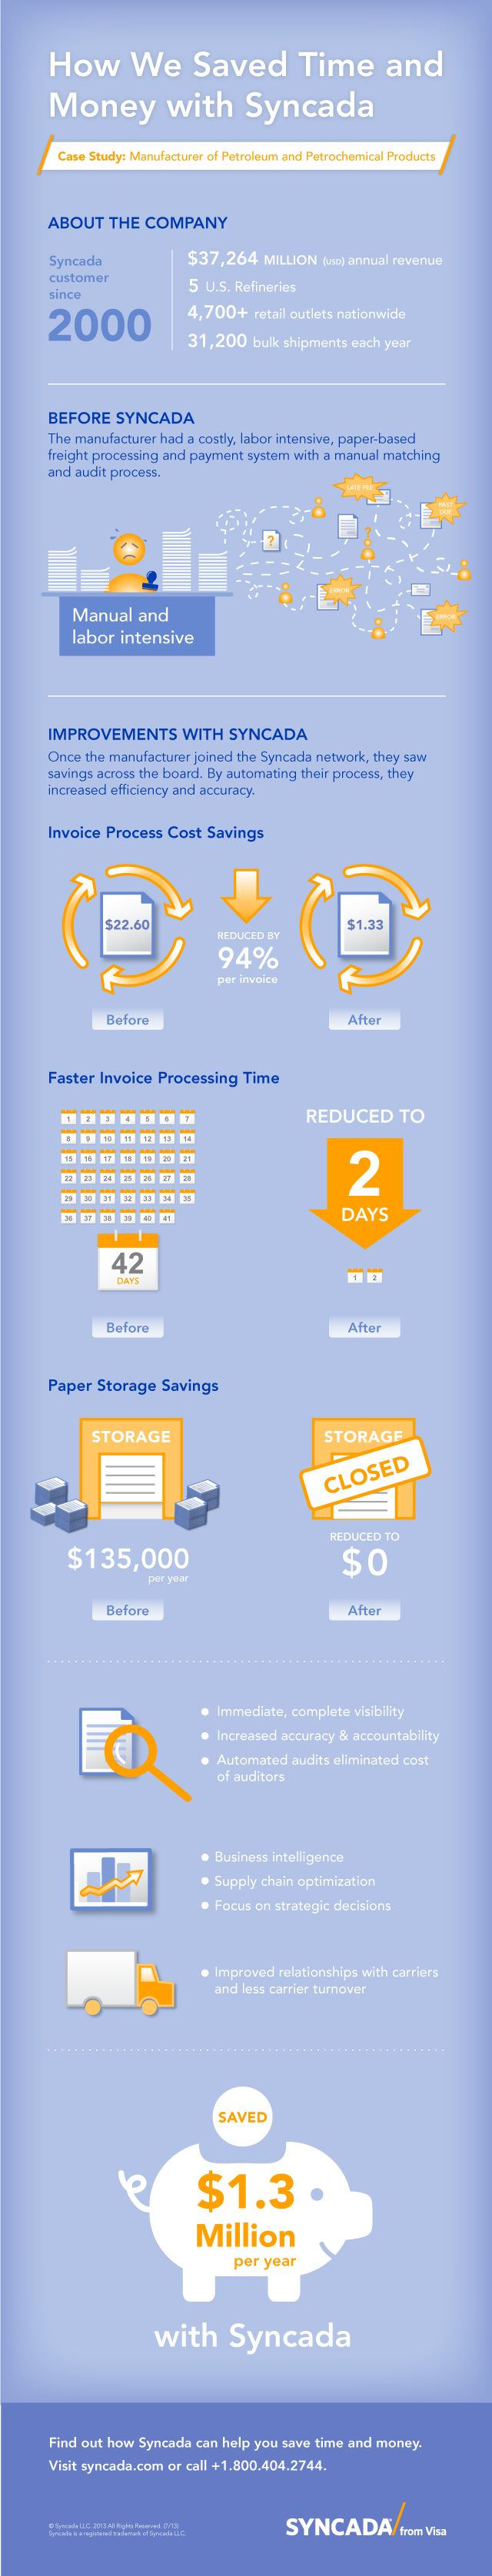 Procure to Pay from Syncada - Petroleum Product Manufacturer Case Study Infographic